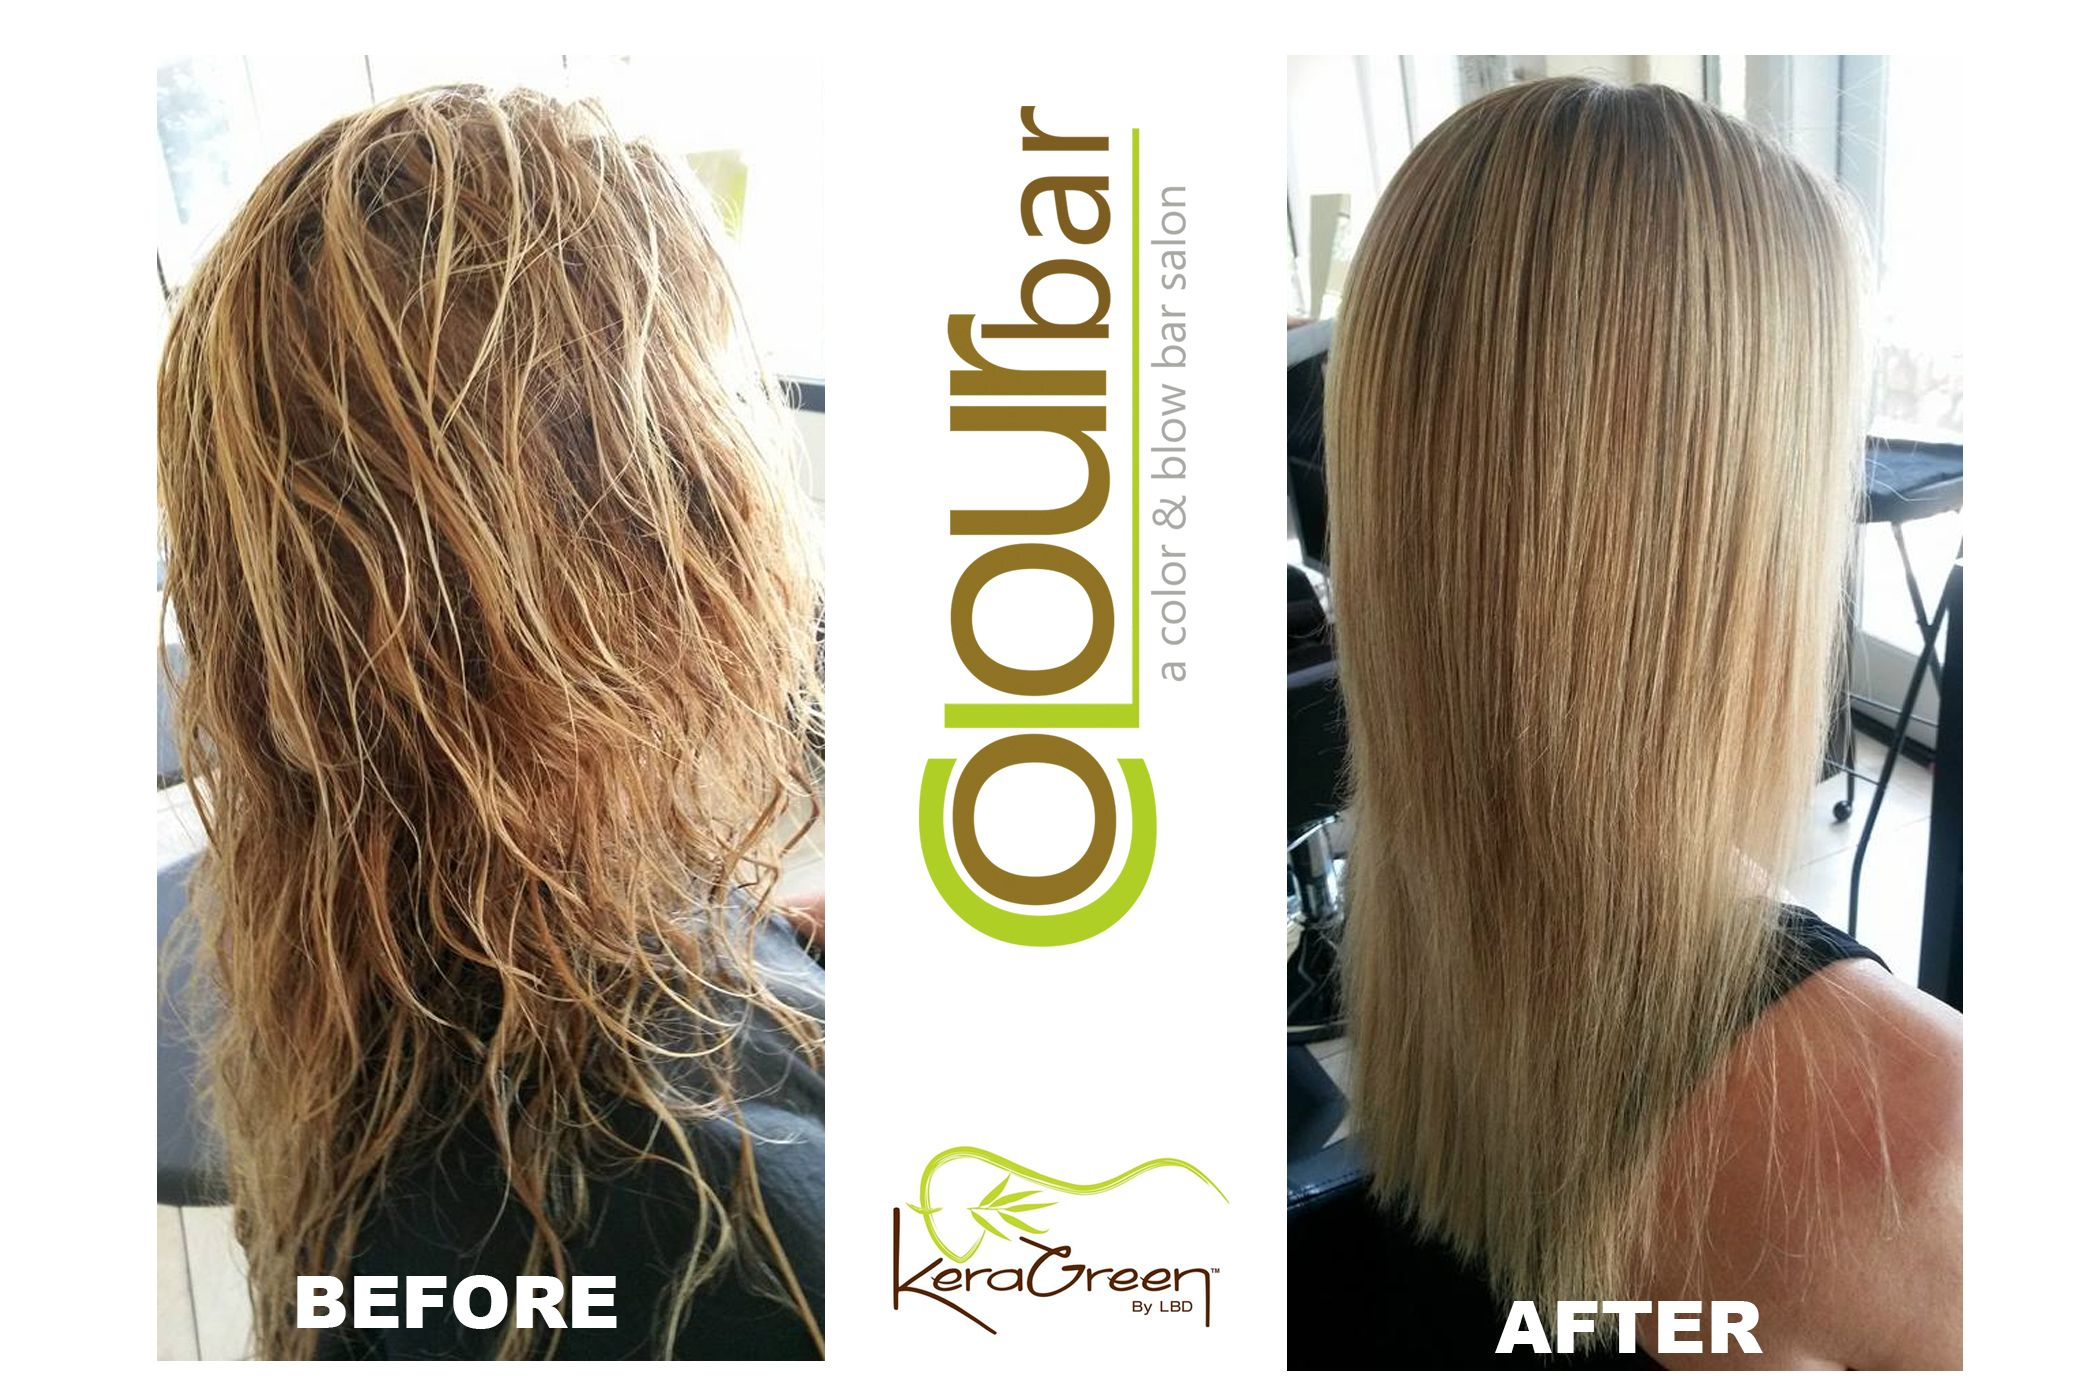 Check out this awesome transformation!  KeraGreen is a plant based smoothing treatment. It delivers smooth, frizz-free hair with out any damage.